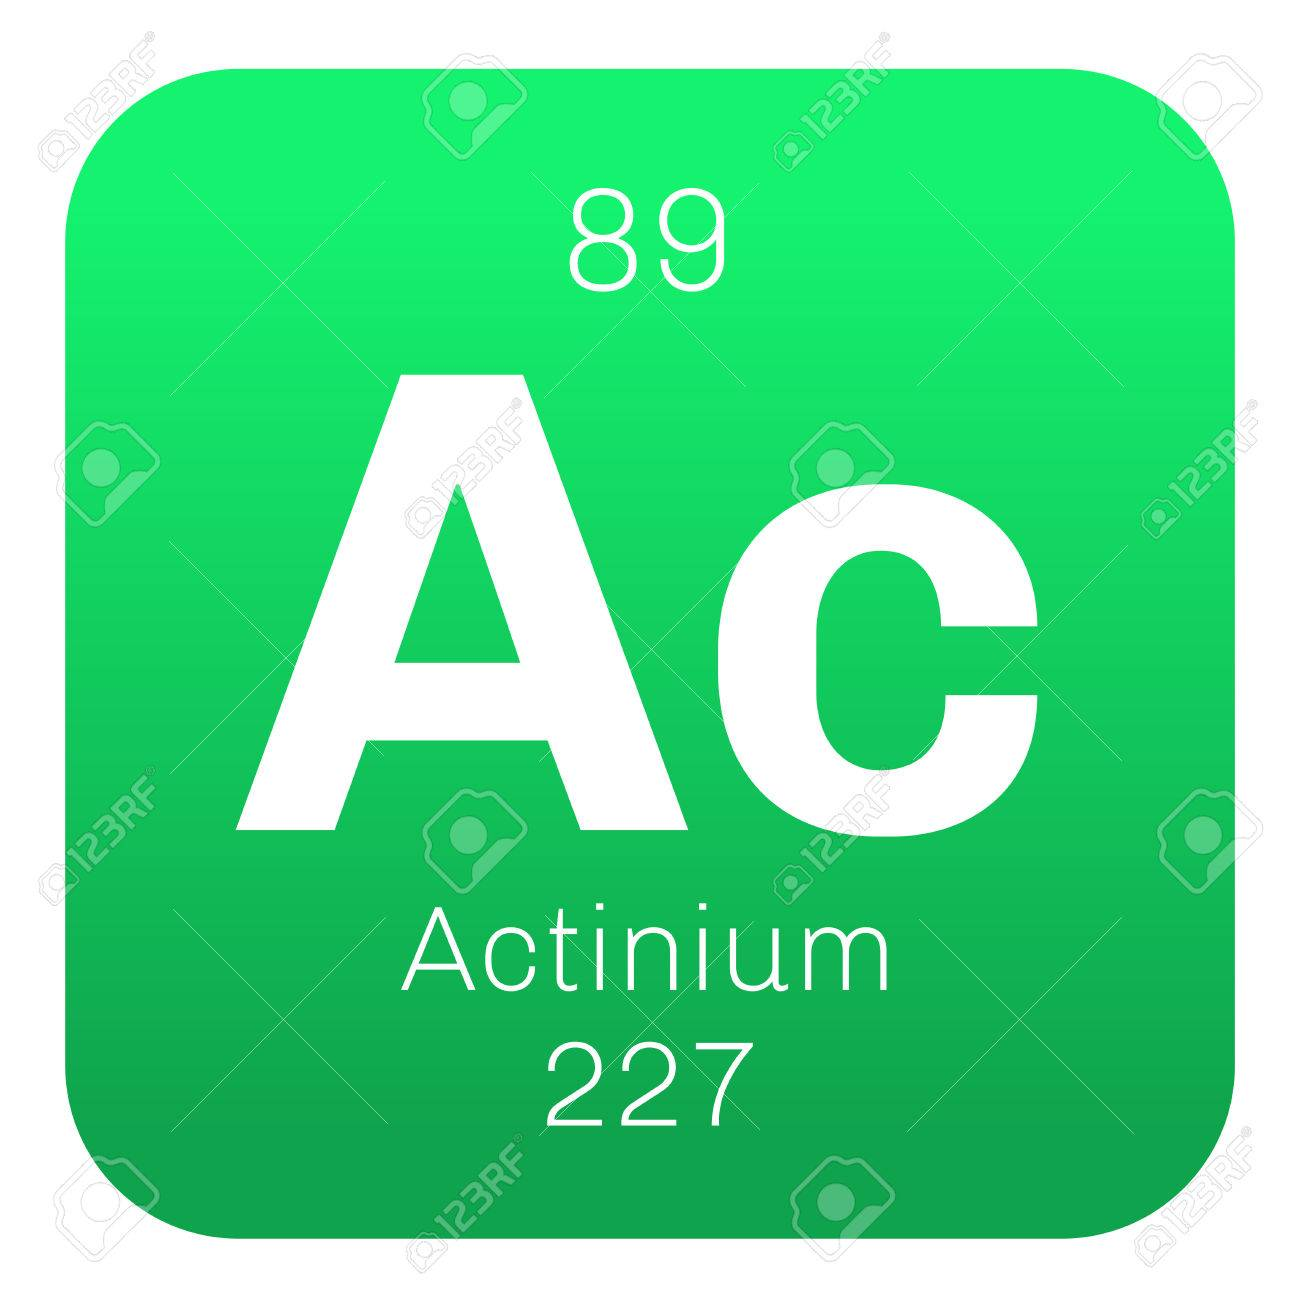 Actinium chemical element radioactive chemical element colored actinium chemical element radioactive chemical element colored icon with atomic number and atomic weight urtaz Image collections